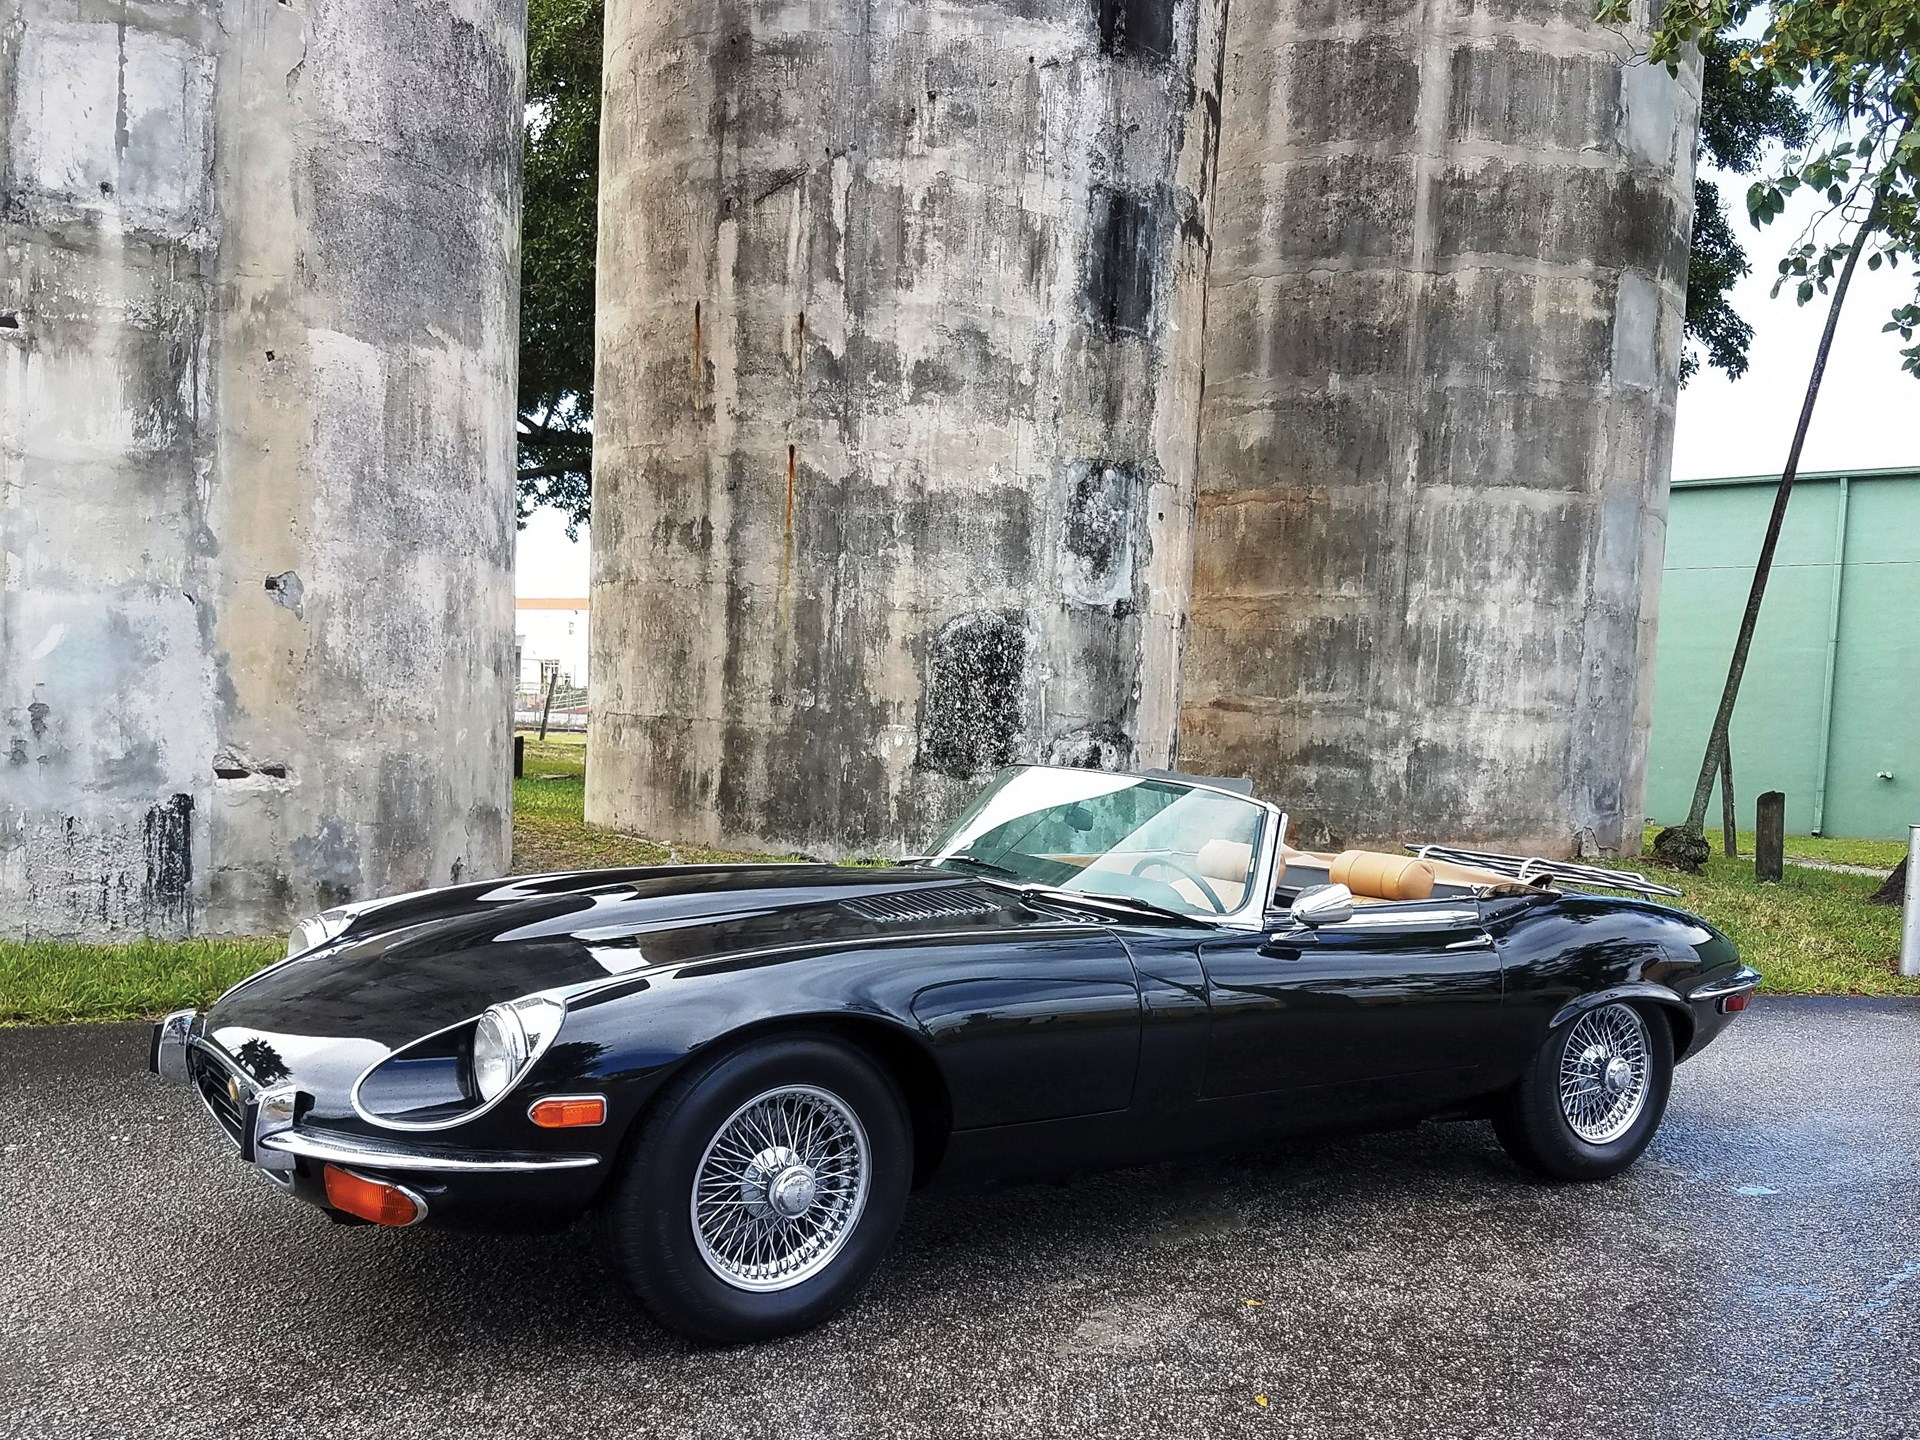 before leaks new goodwood model lauderdale news jaguars s jaguar debut leaked special production operations photo fort gallery project